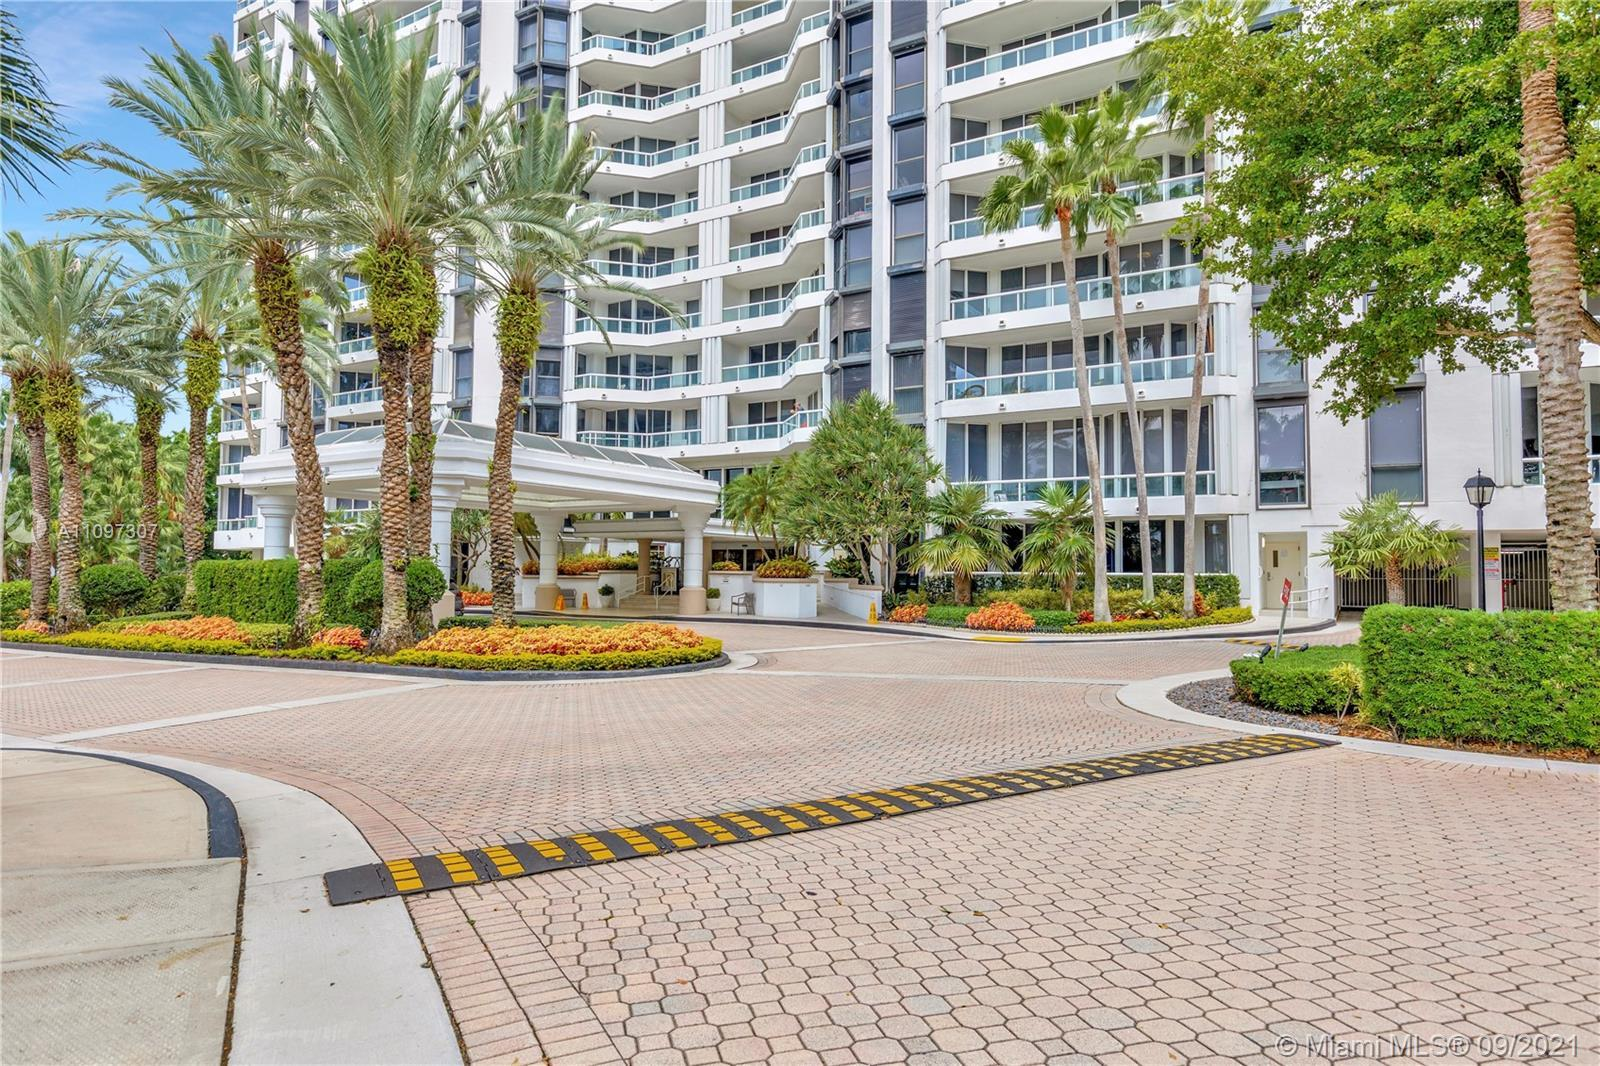 BEAUTIFUL UNIT 3 BD, 2 BA AT THE POINT NORTH TOWER, GREAT WATER AND OCEAN VIEW, NEW FLOORS, GREAT AM